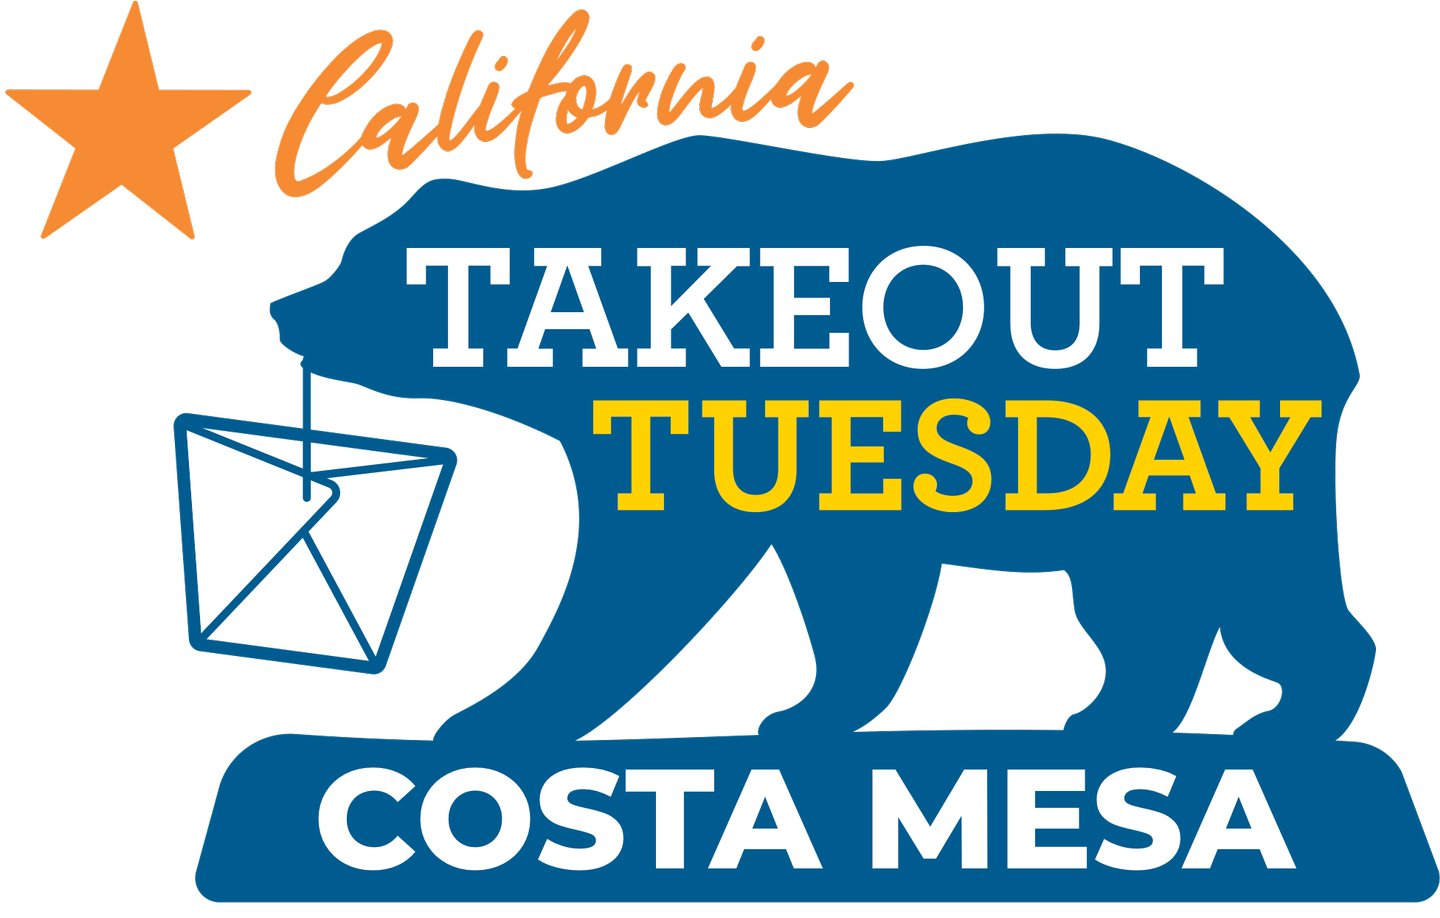 CA Takeout Tuesday in Costa Mesa